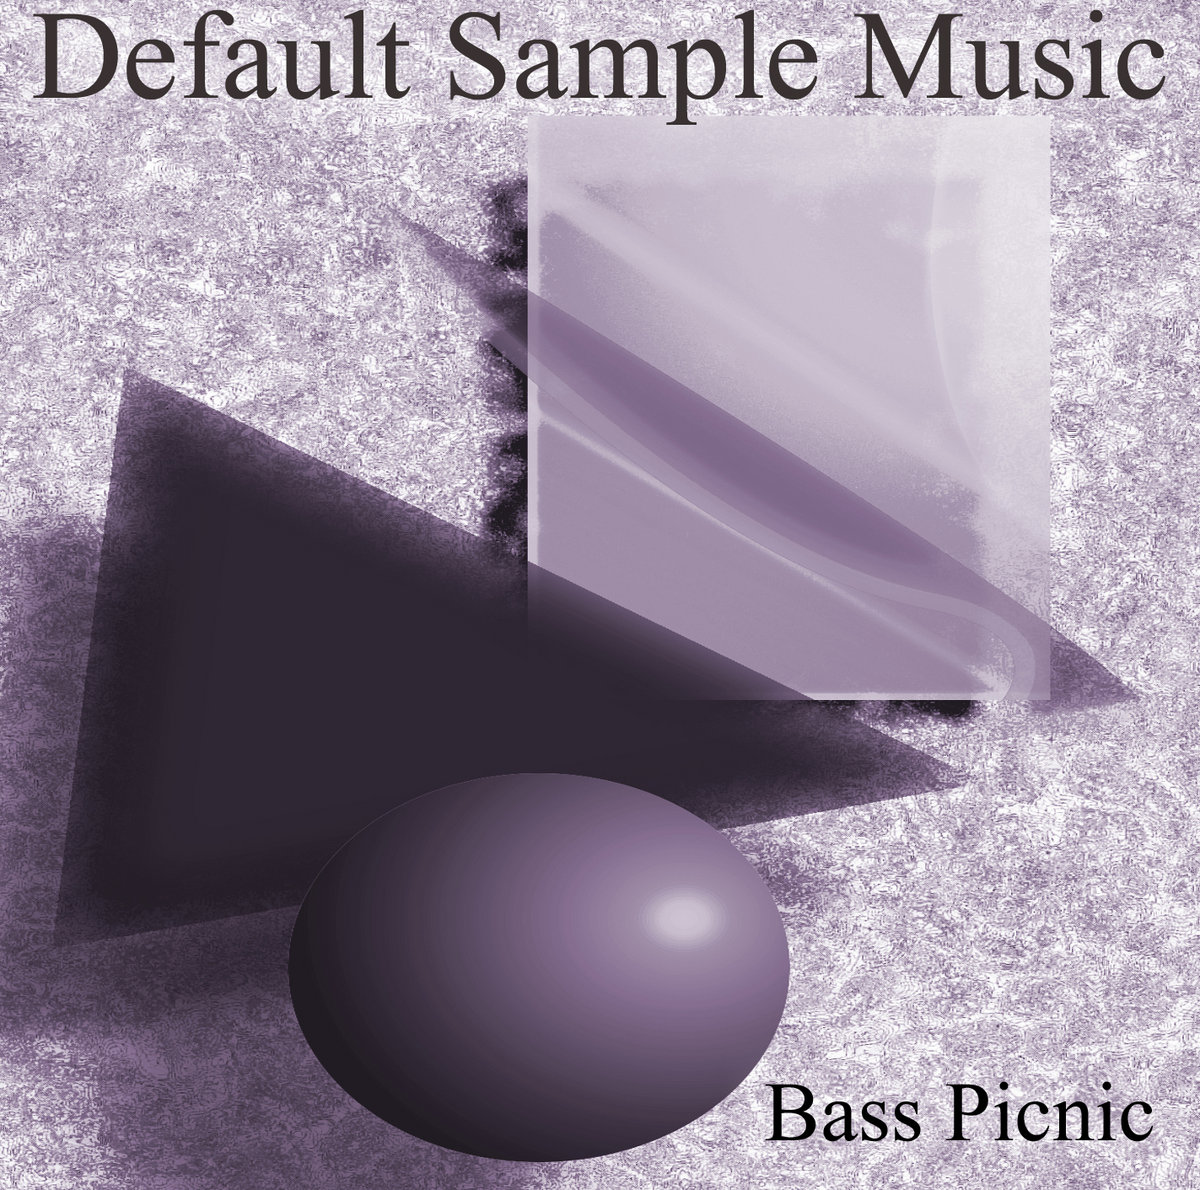 Default Sample Music - Bass Picnic EP